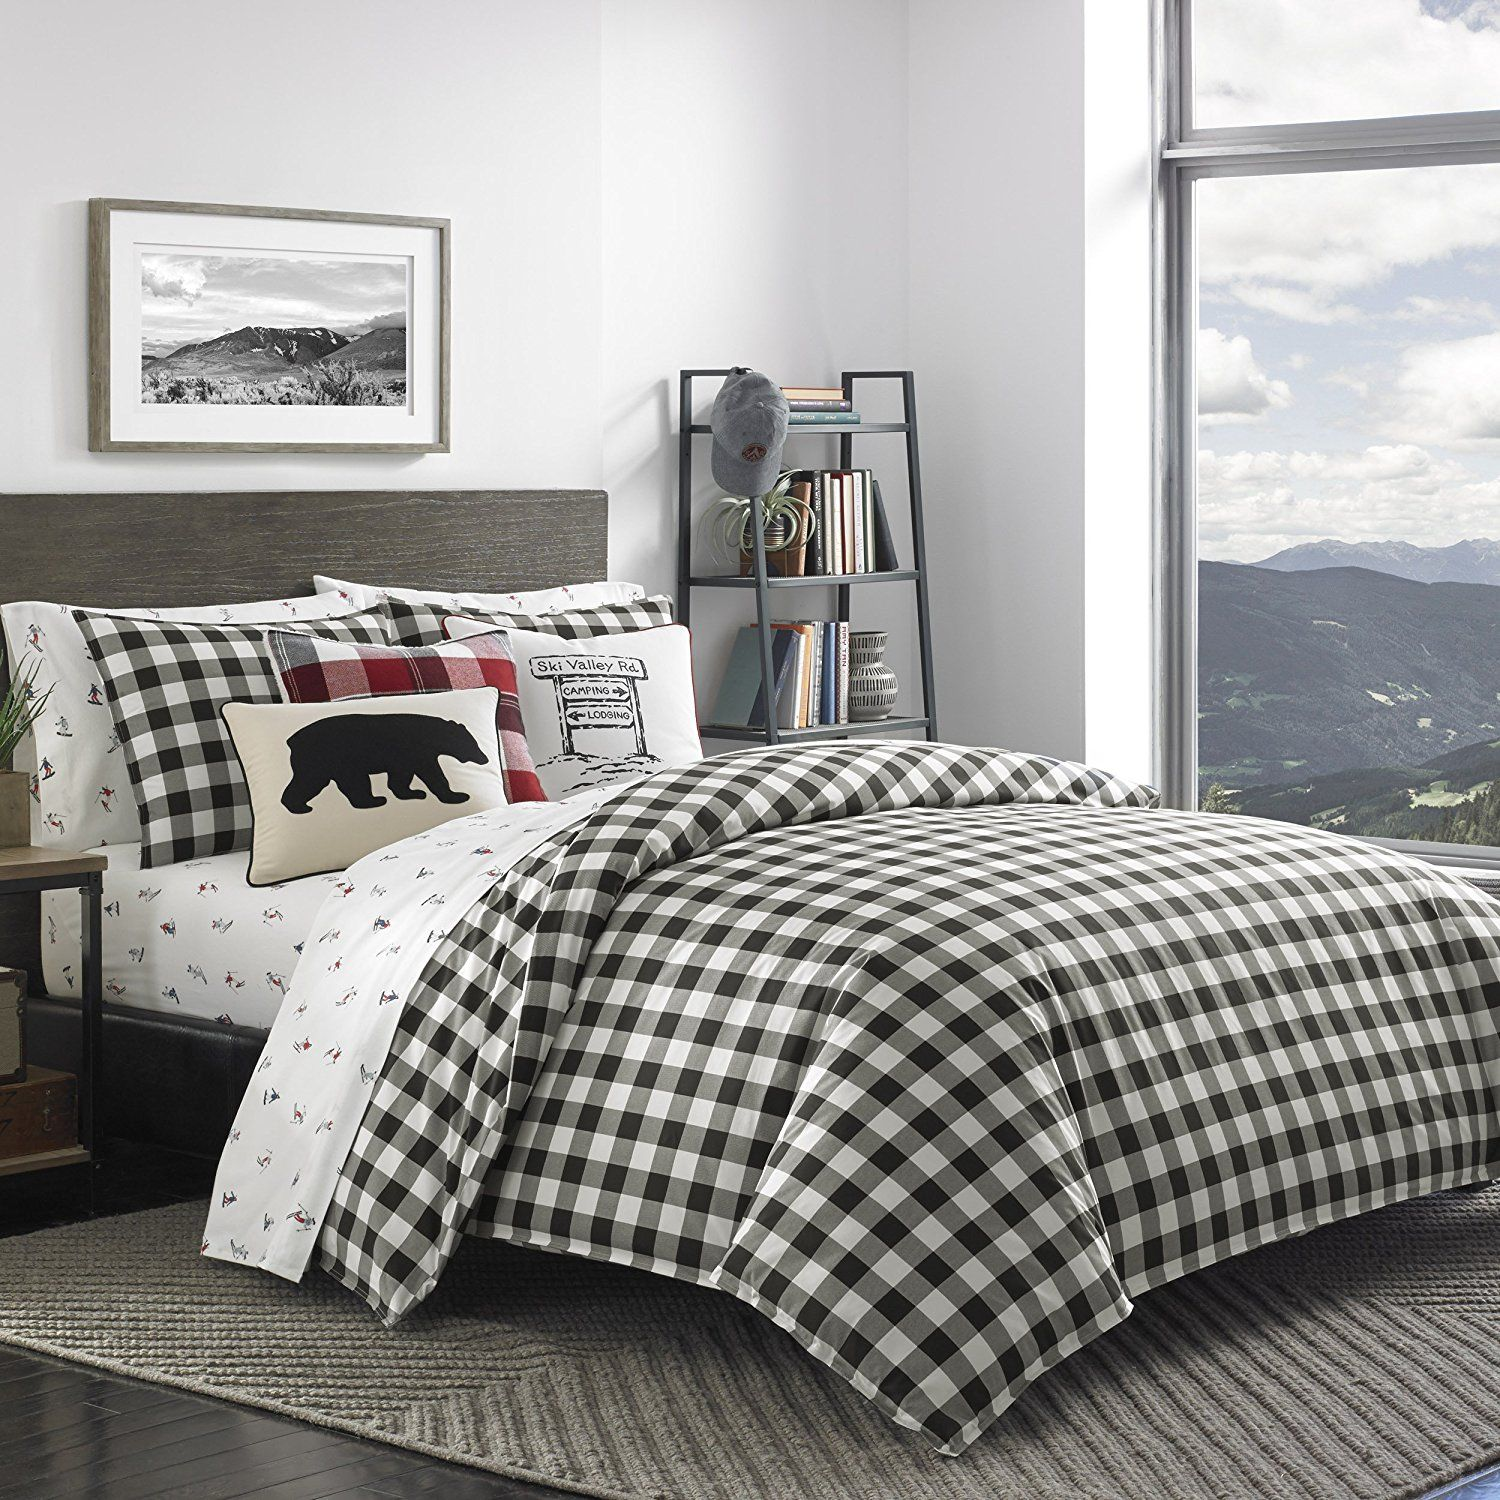 plaid comforter red for brown bedroom and corner with set leather bath fireplace decoration sets tufted your design headboard bed interesting faux comfortable